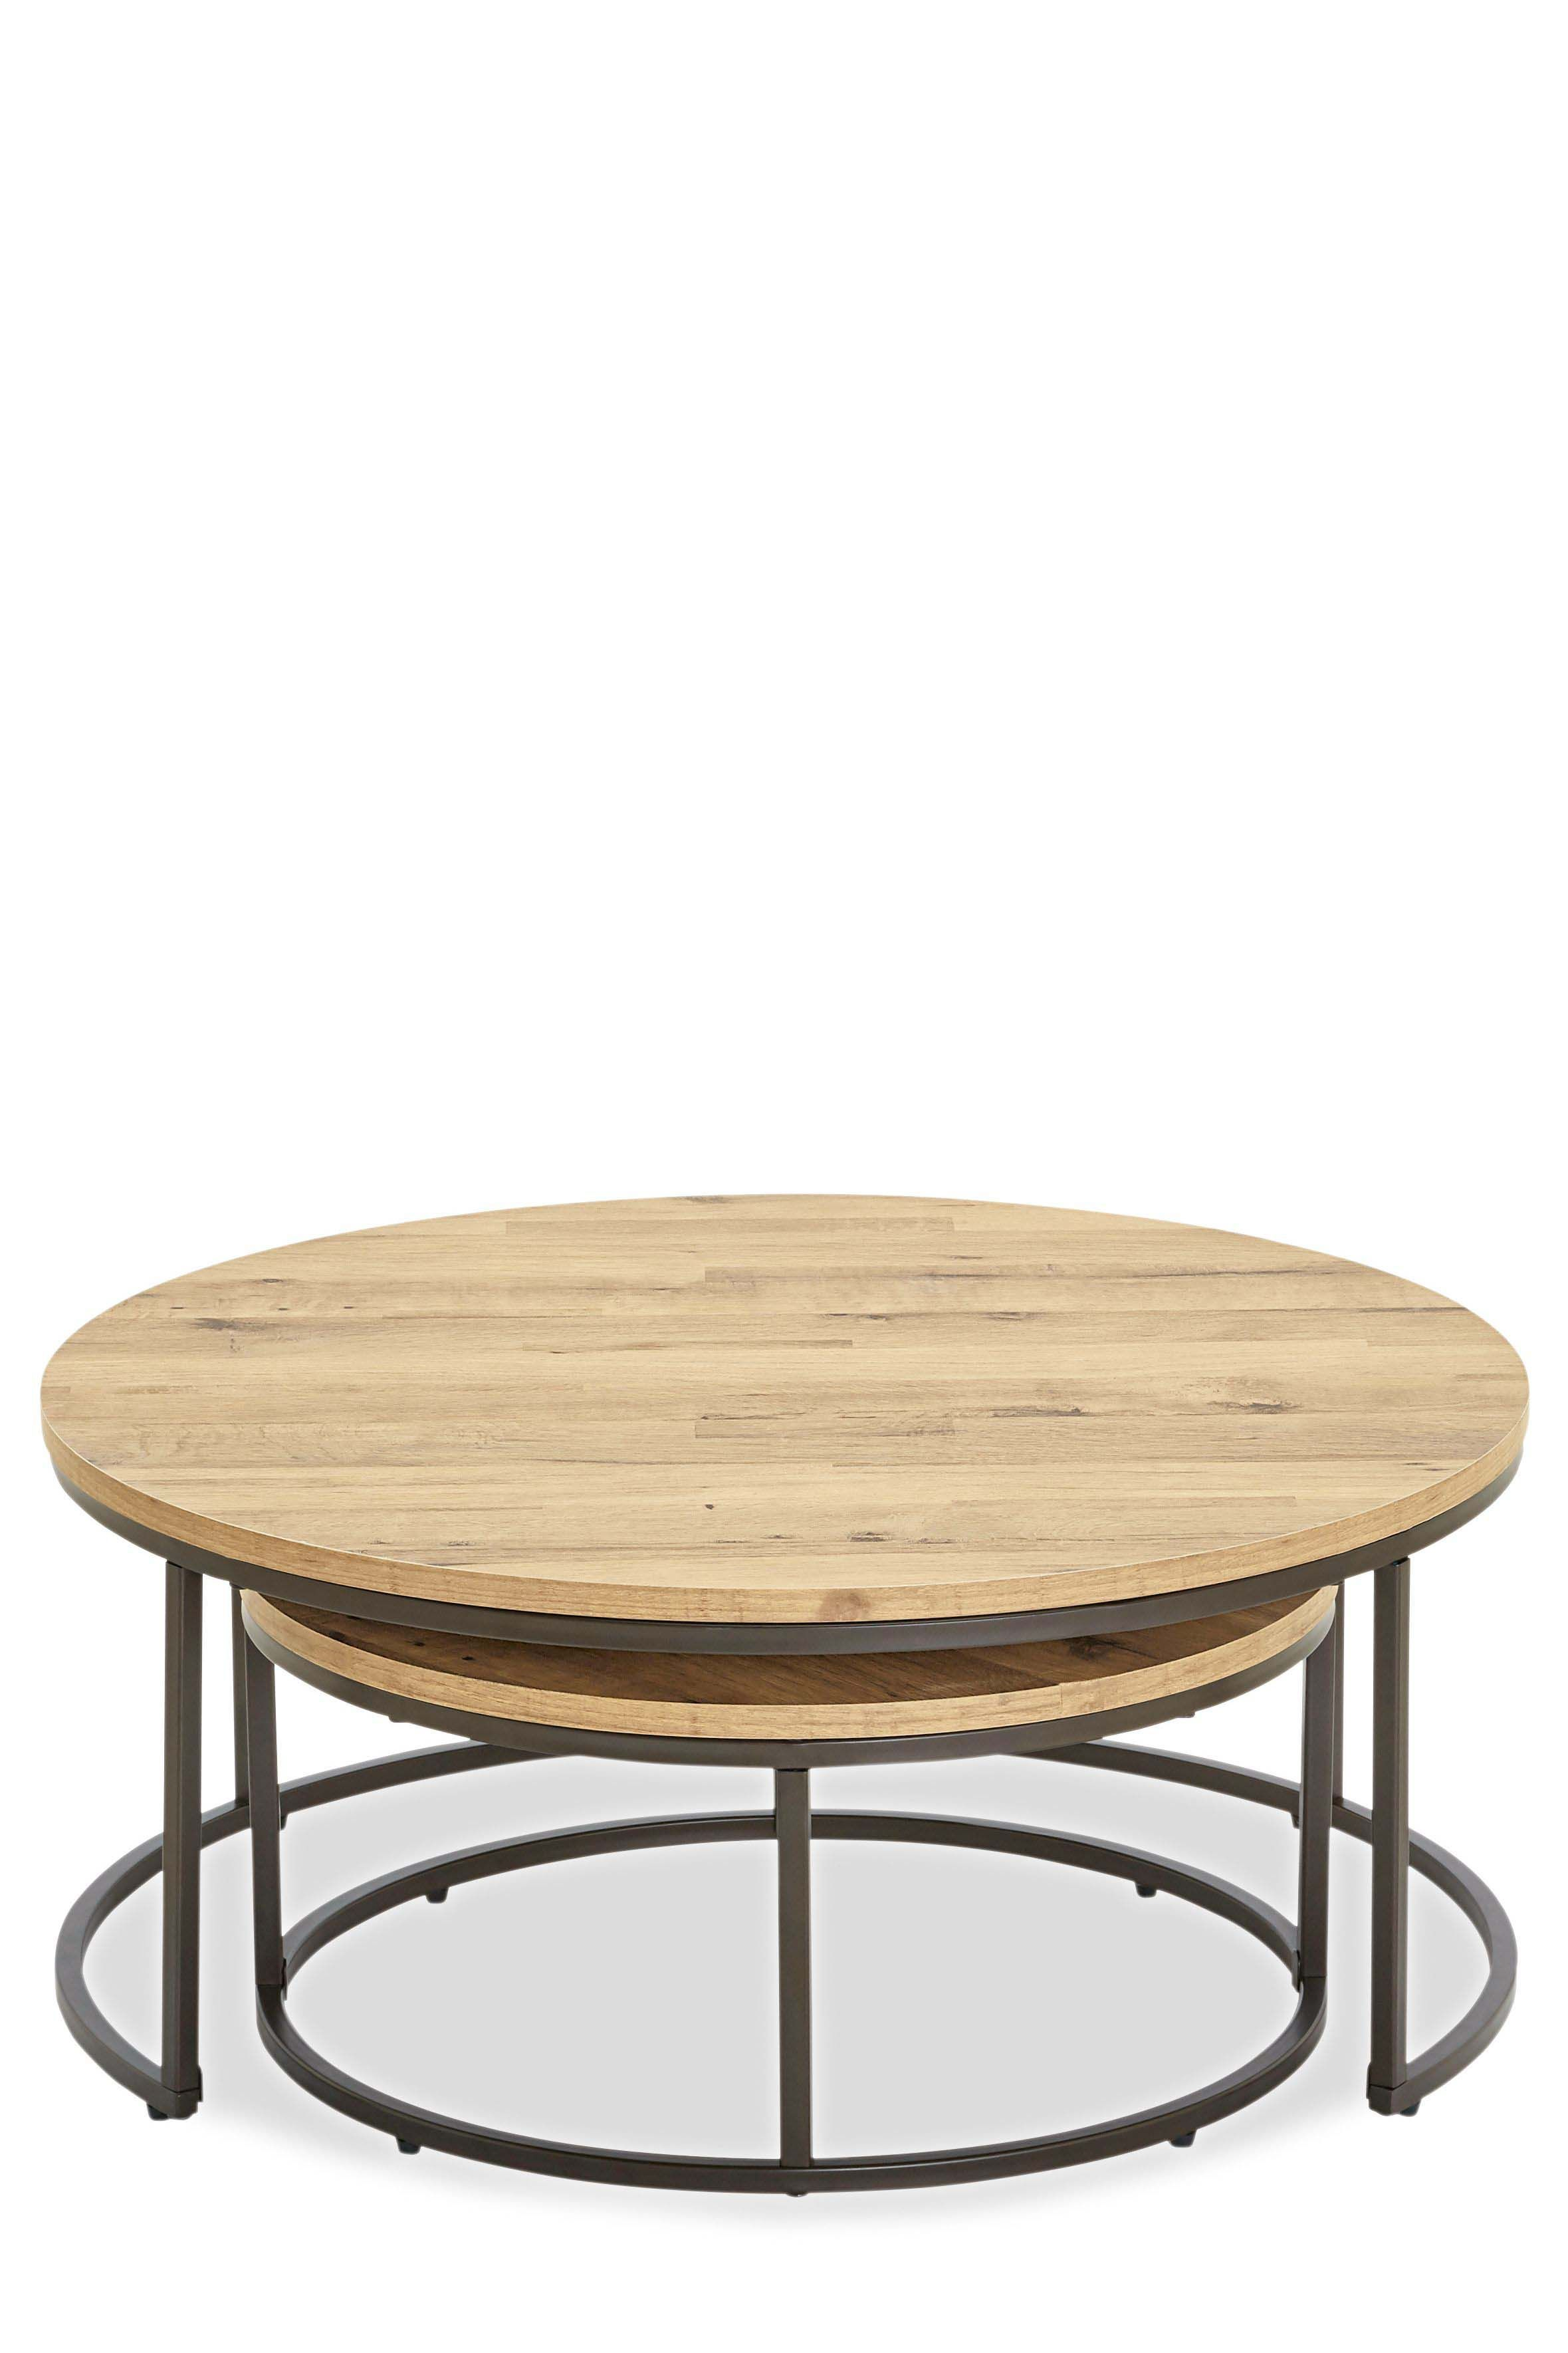 30 Round Glass Coffee Table Coffee Table Wood Nesting Coffee Tables Coffee Table [ 3539 x 2359 Pixel ]